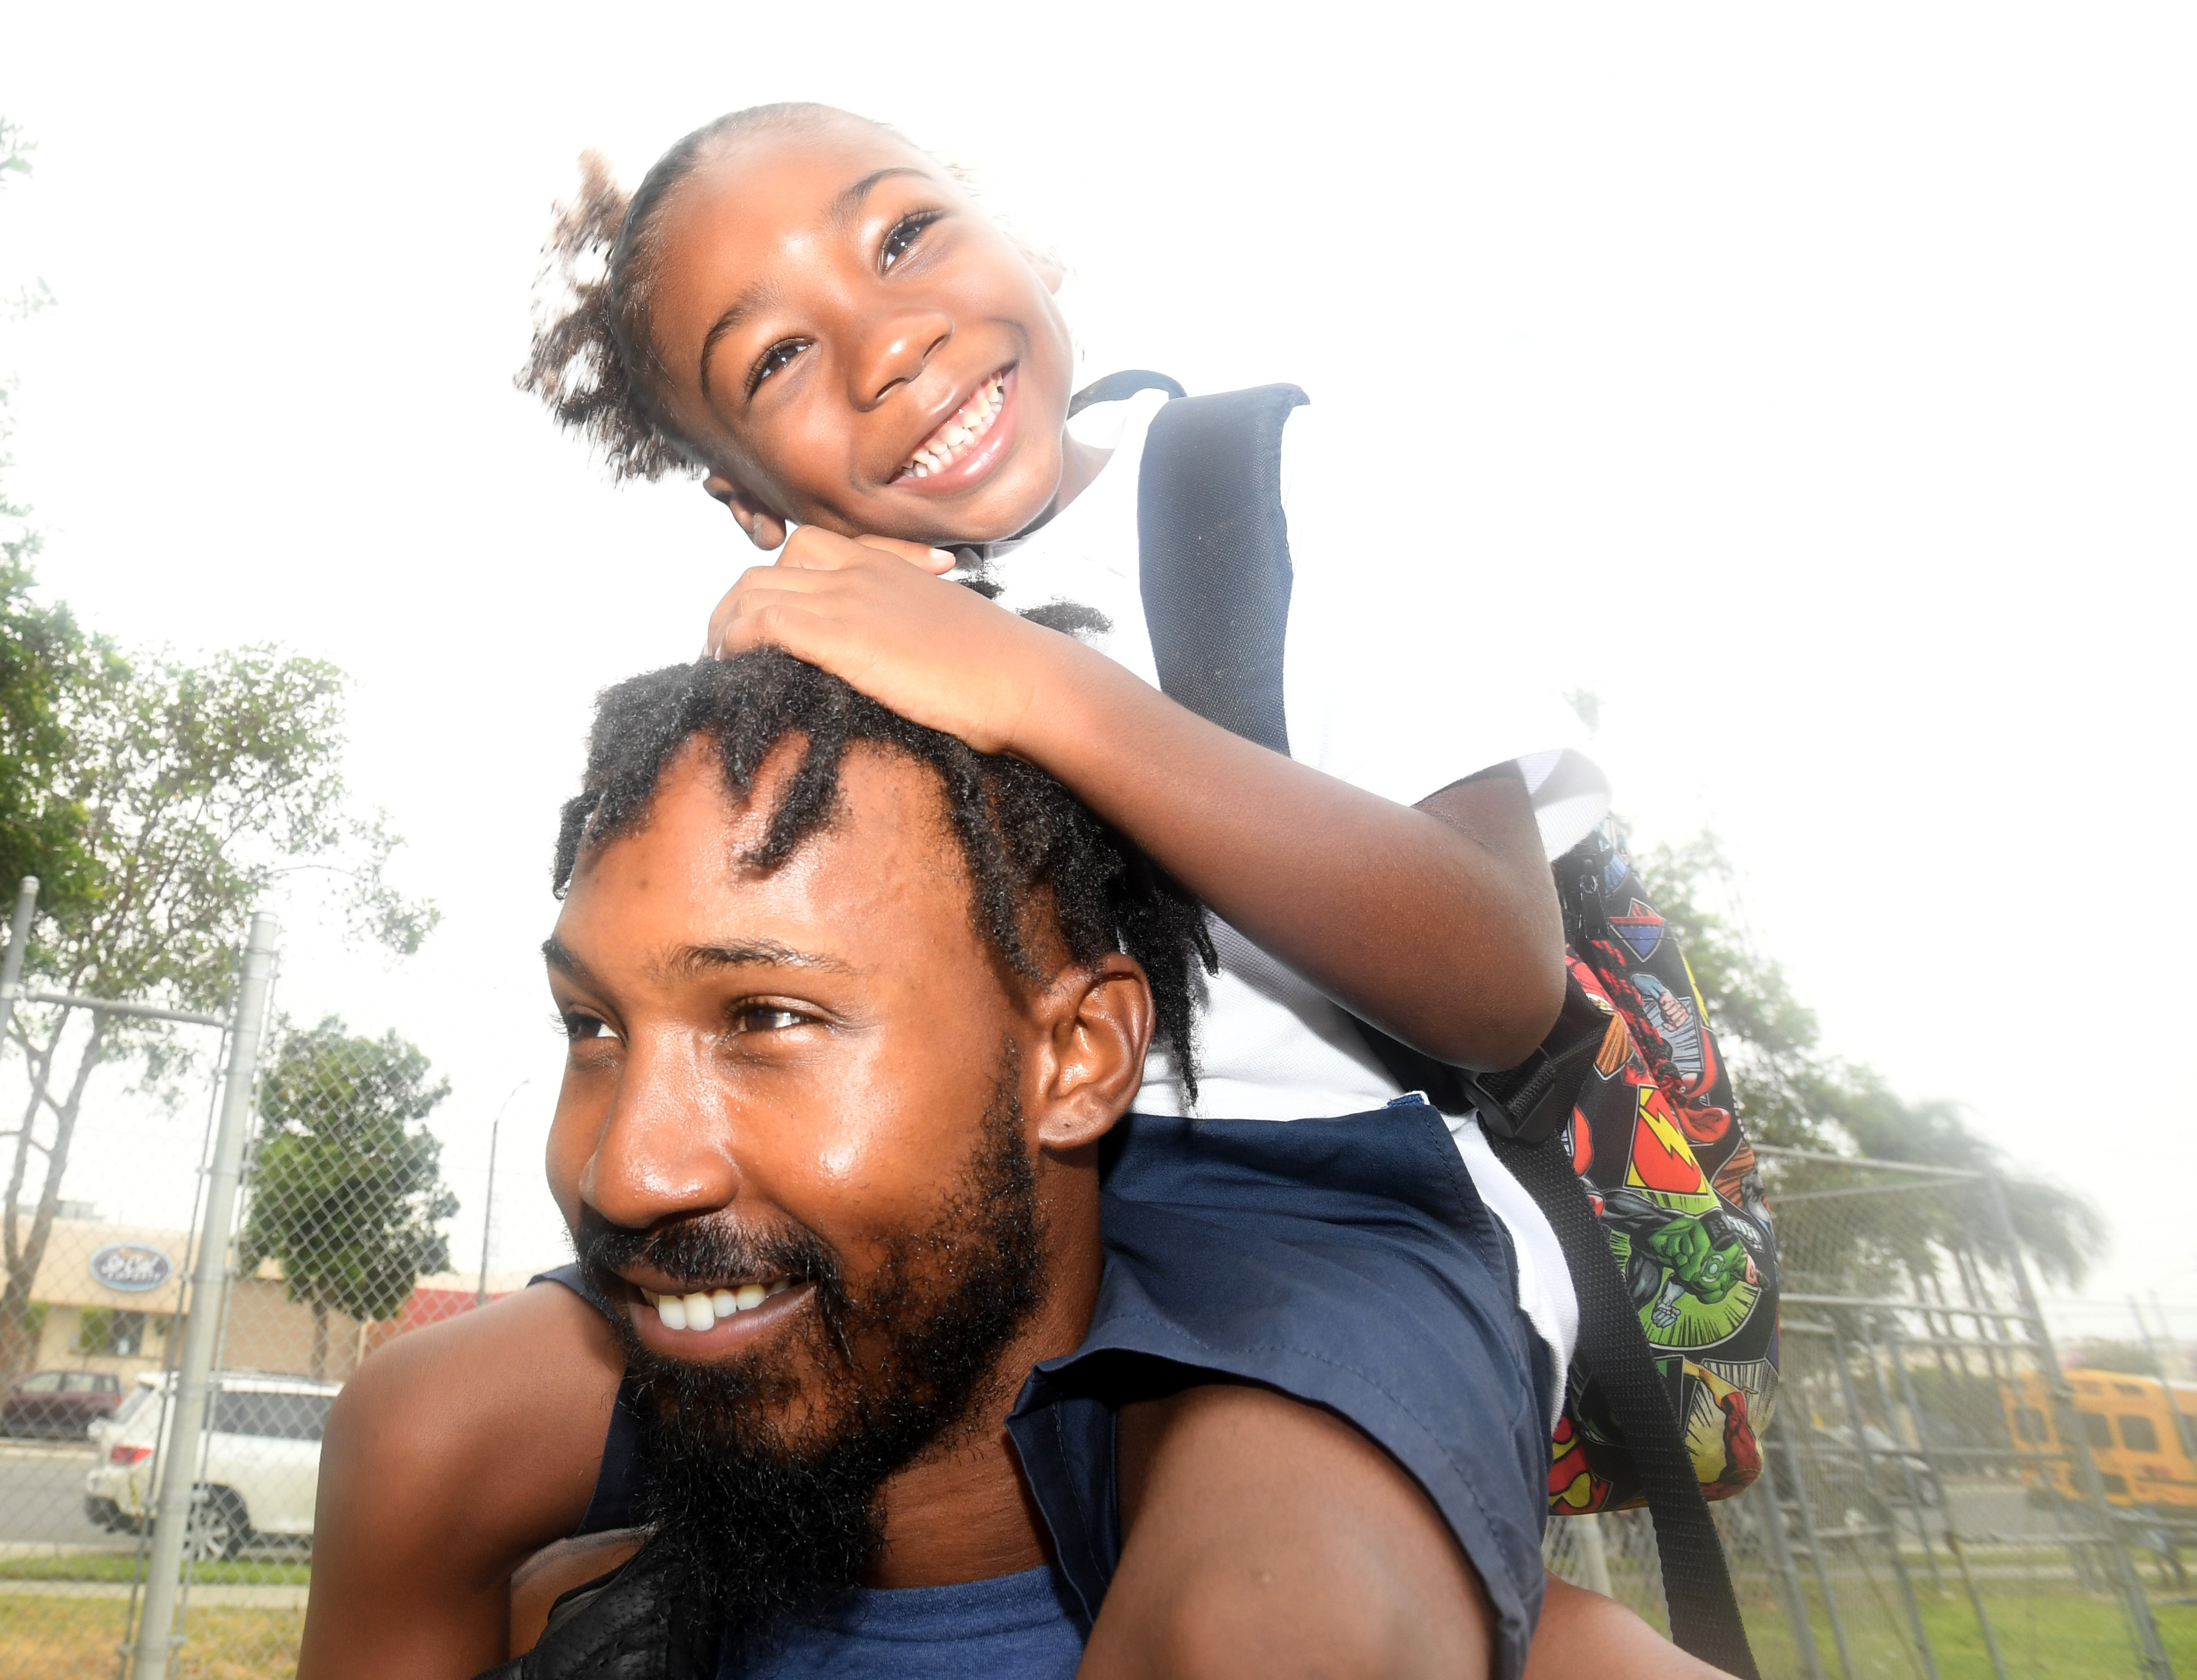 Kal-El Mulkey-Hiriams is all smiles on his dads shoulders and ready for the first day of kindergarten at McKinley Elementary School in Long Beach on Wednesday, August 28, 2019.|Photo: Getty Images